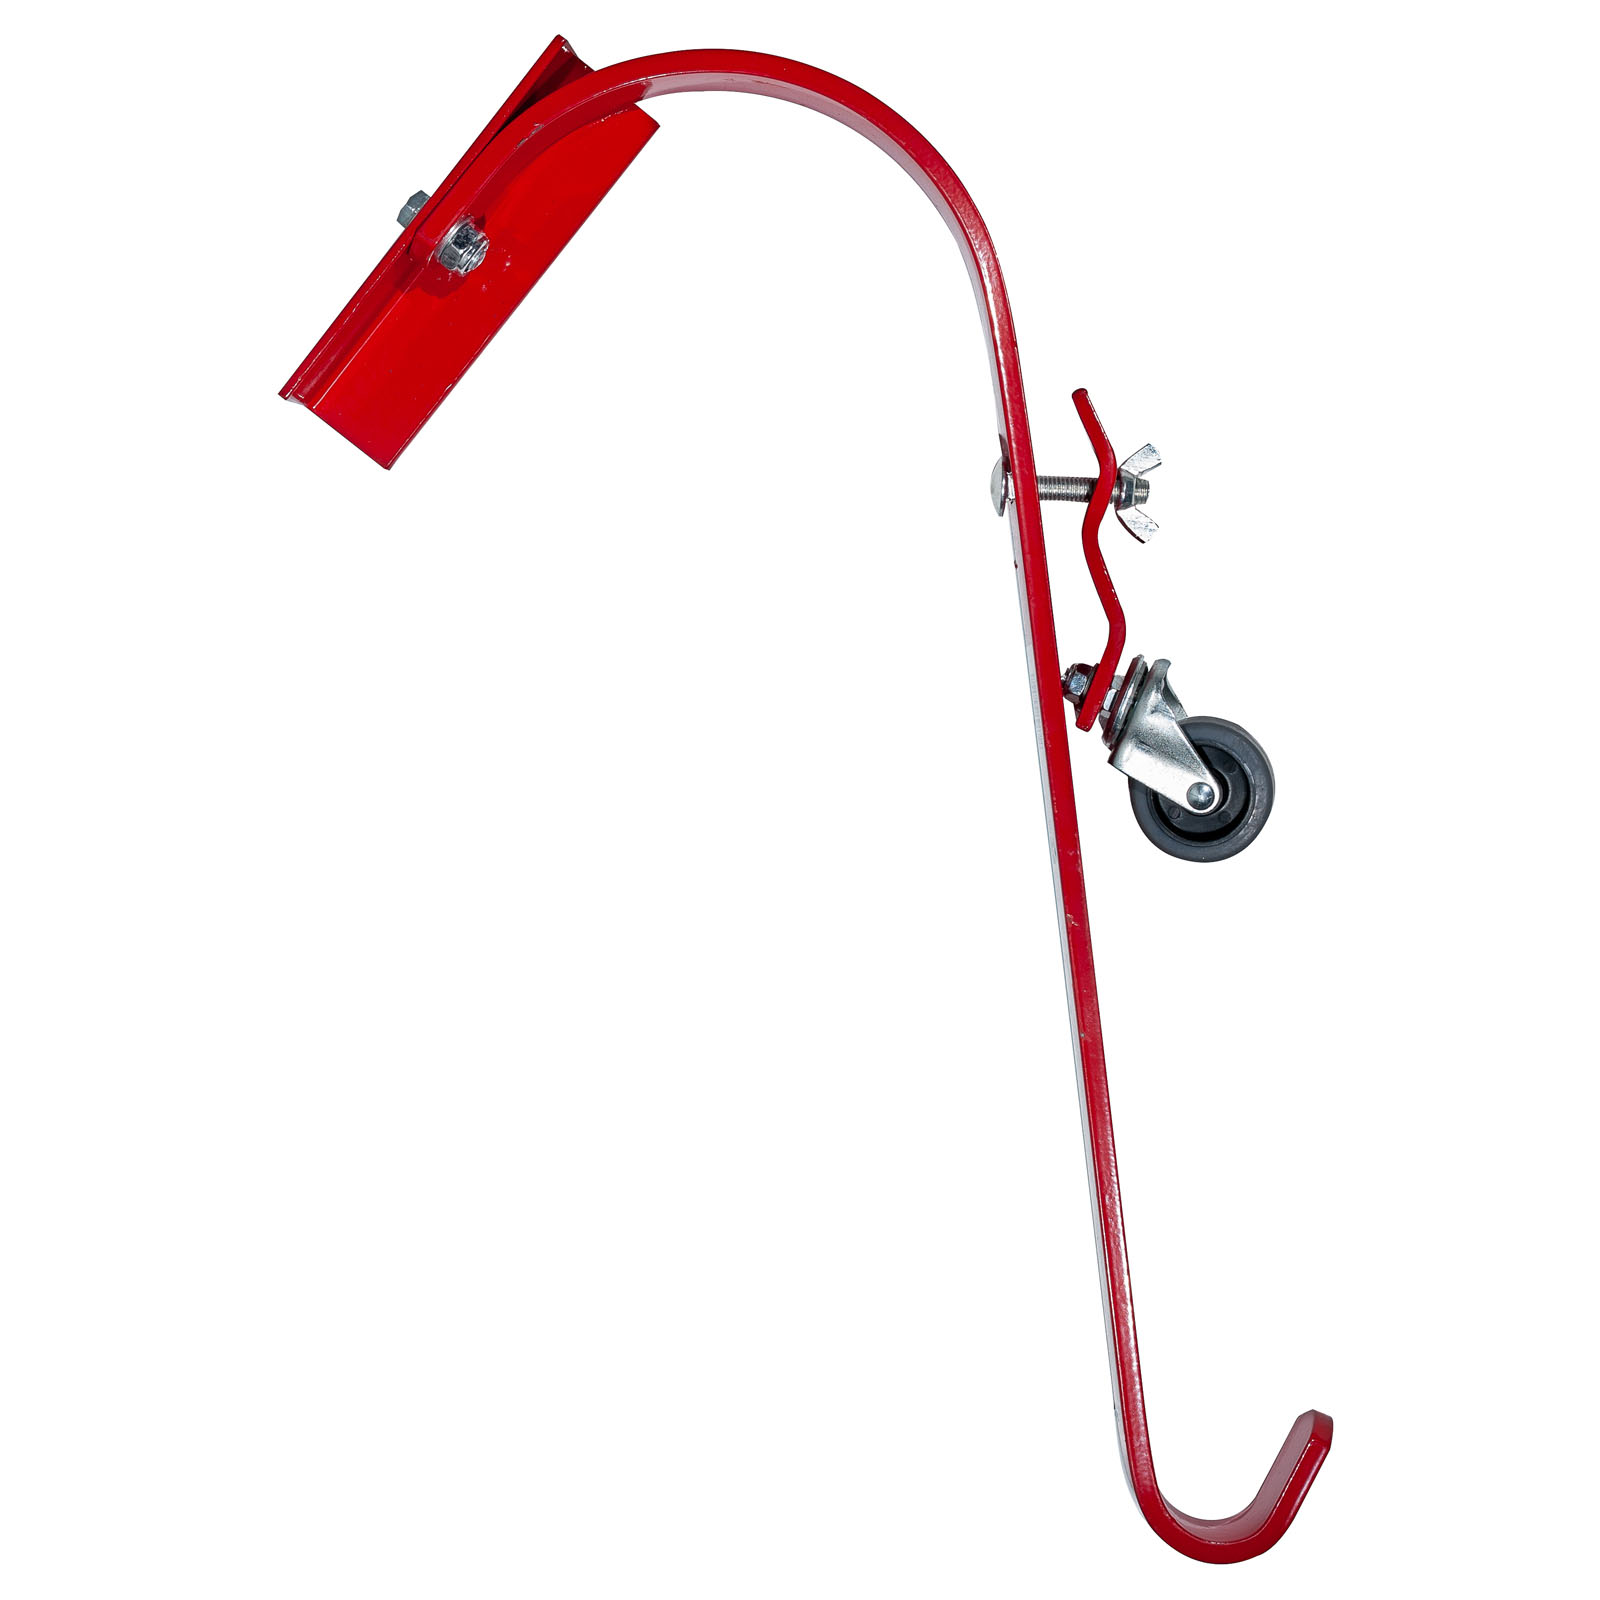 C Amp R Ladder Hook With Wheel From Buymbs Com